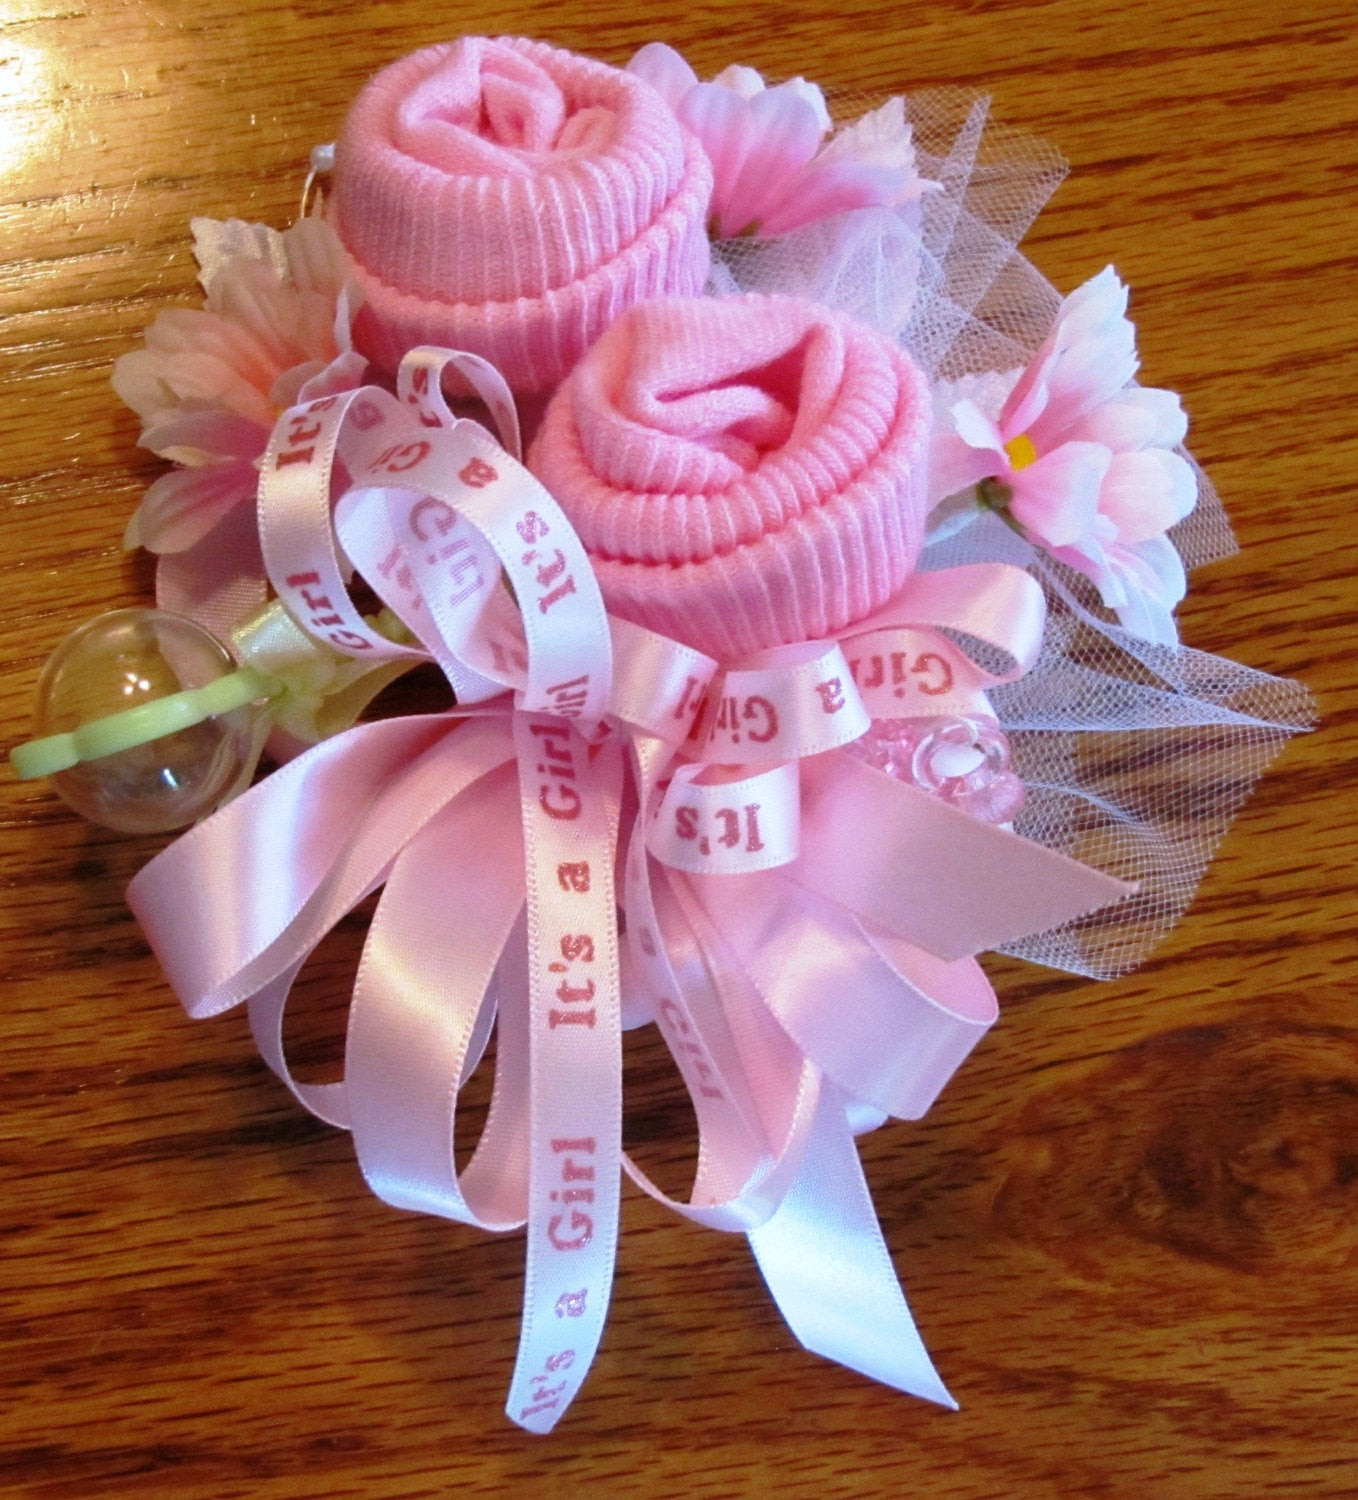 Best ideas about DIY Baby Shower Corsage . Save or Pin Baby Sock corsage Handmade baby sock shower corsage Baby Now.